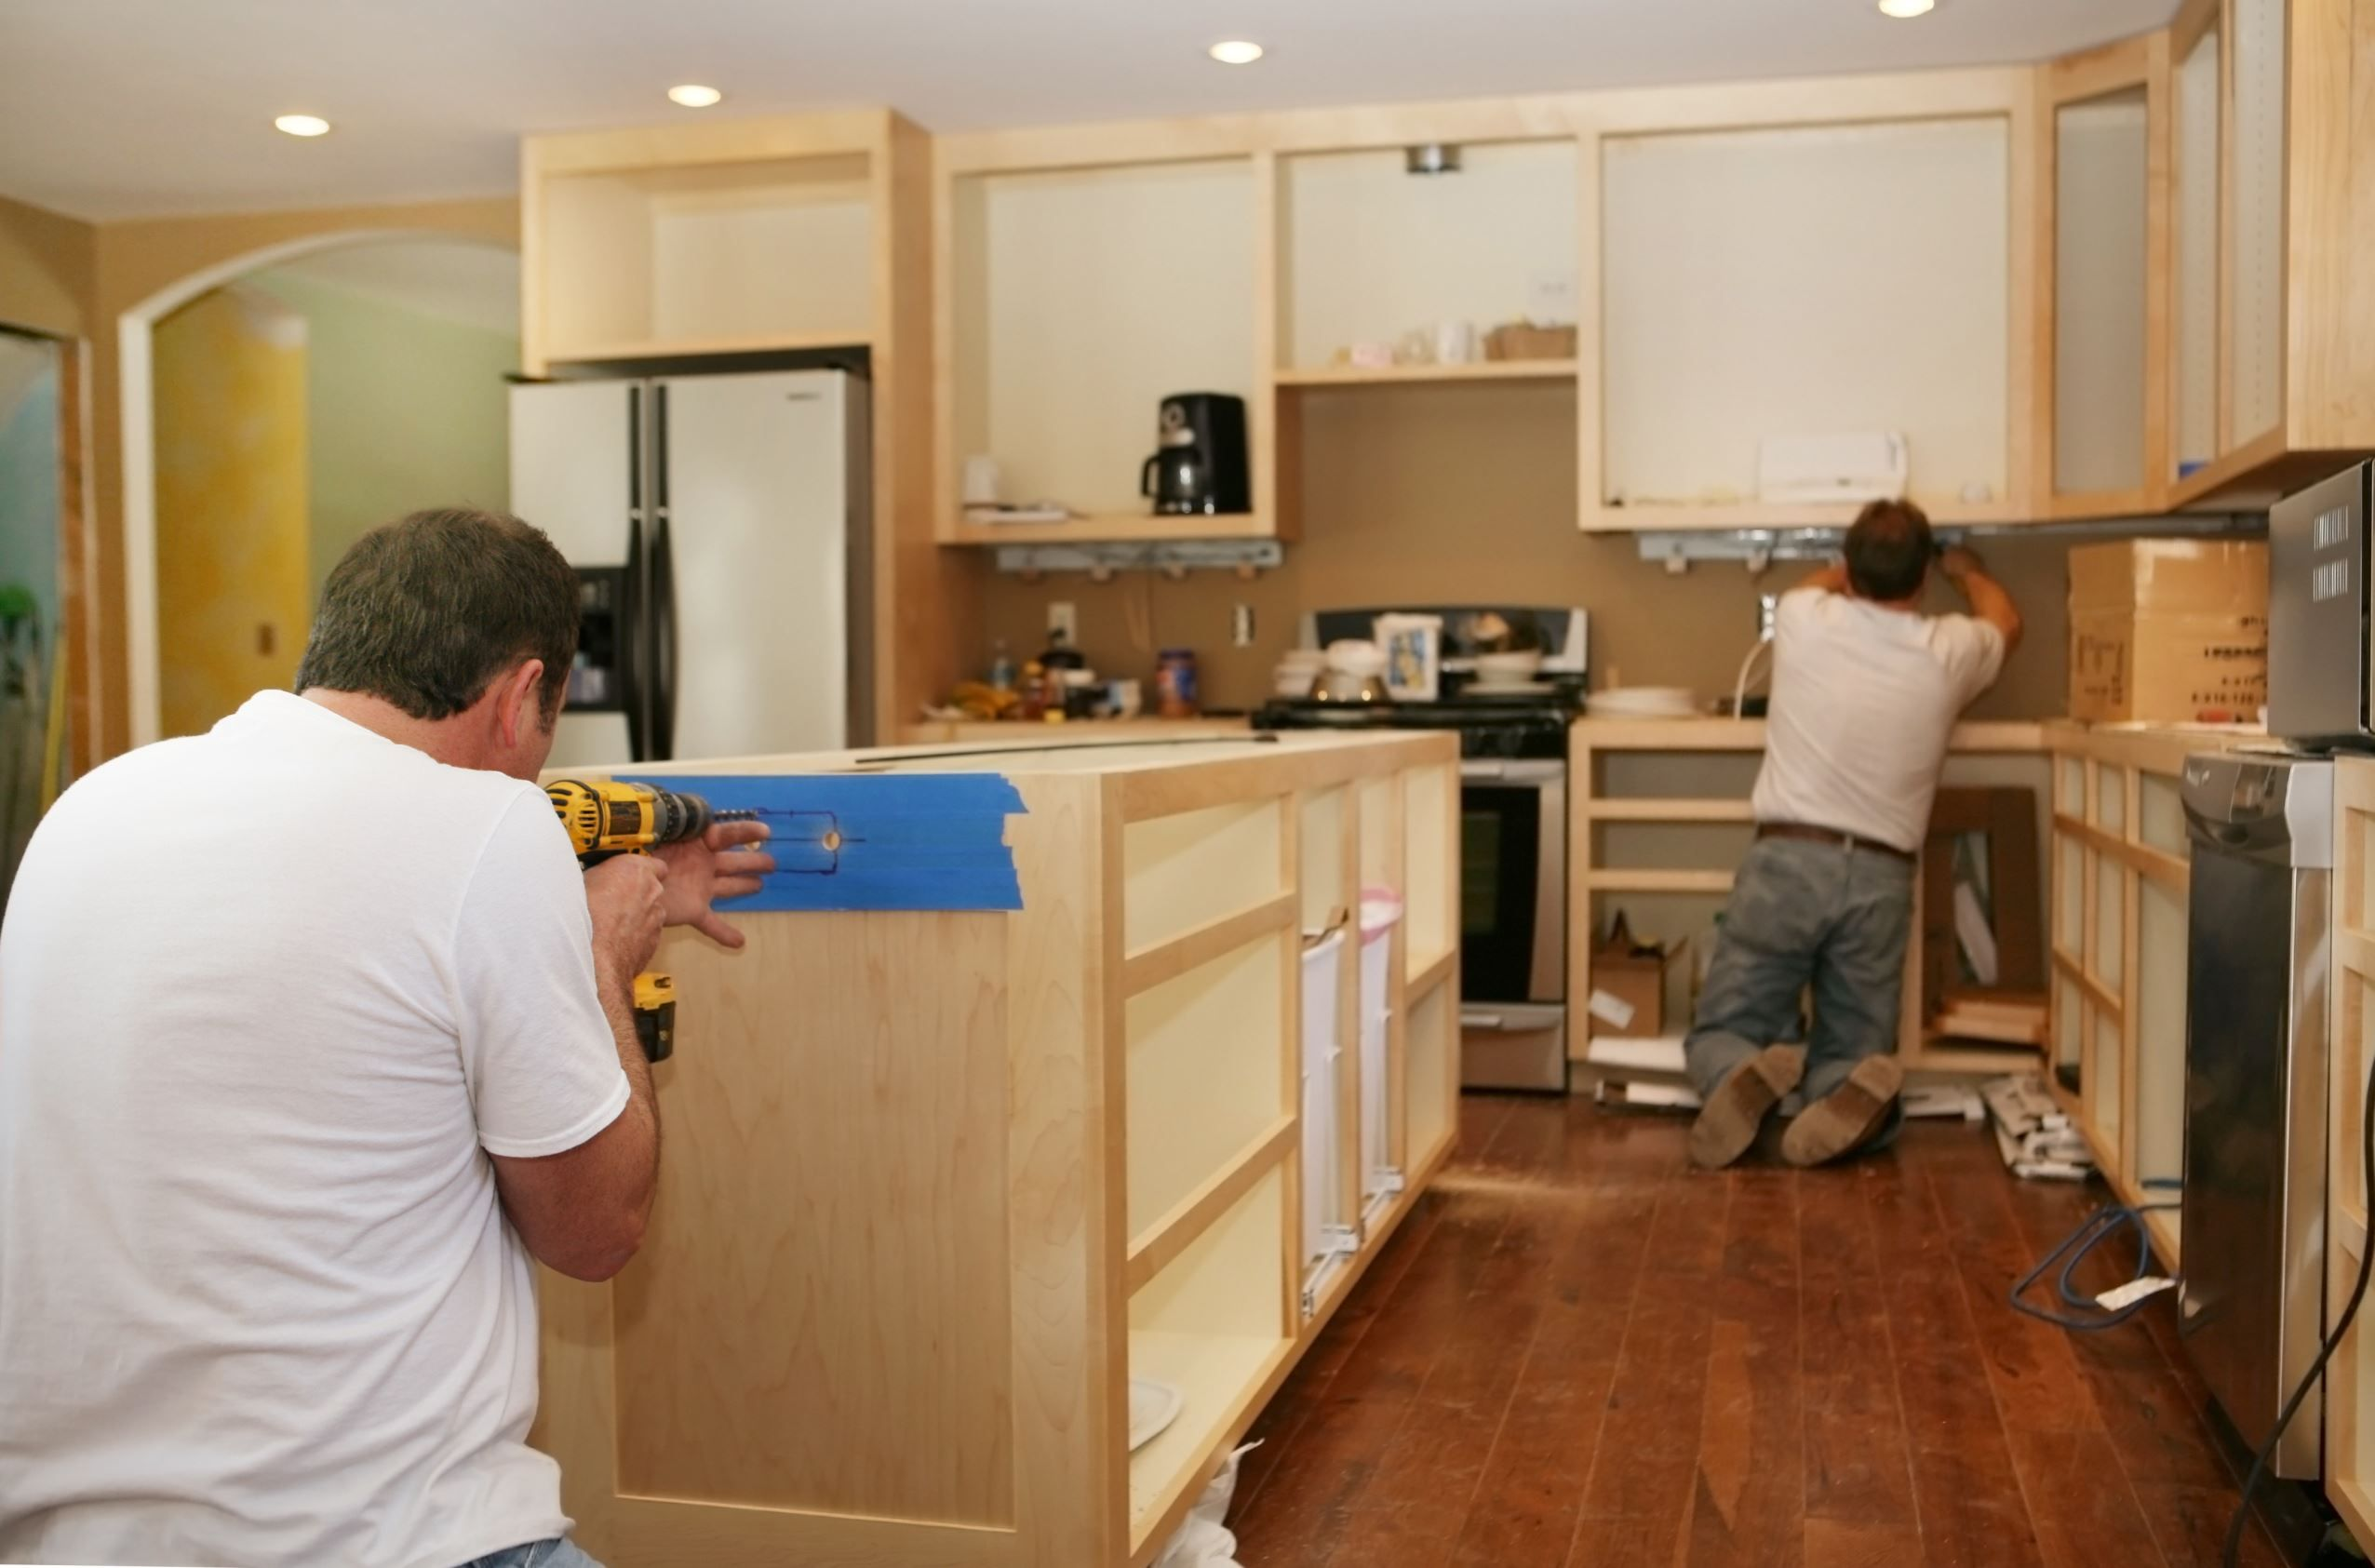 6 Great Ways to Spend $10,000 | Cheap kitchen remodel ...